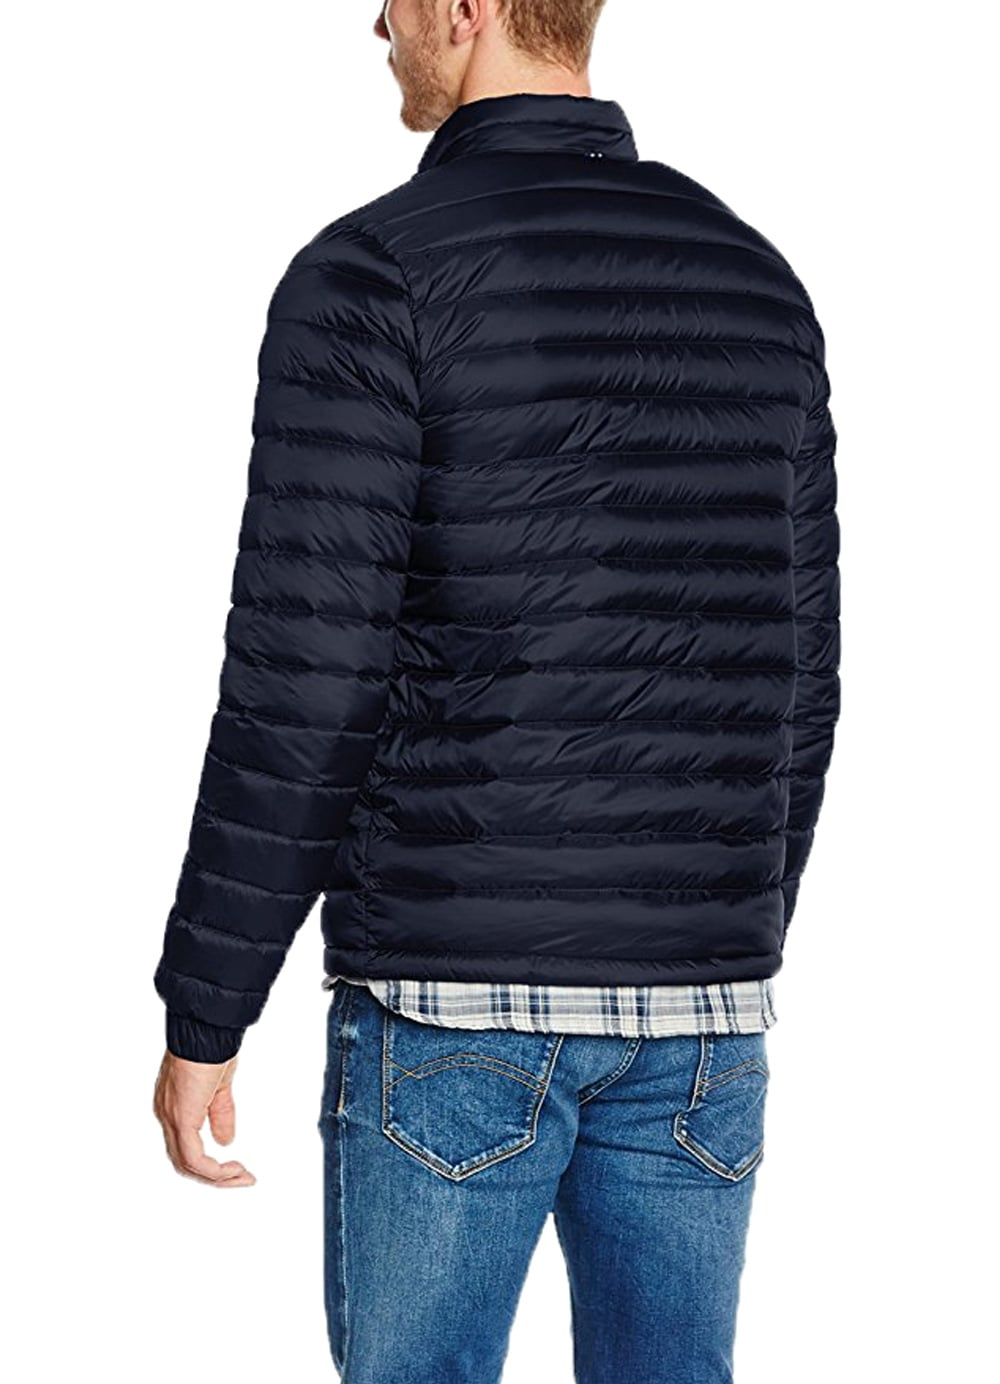 Tommy Hilfiger Core Lightweight Packable Down Jacket Sky Captain Time Clothing